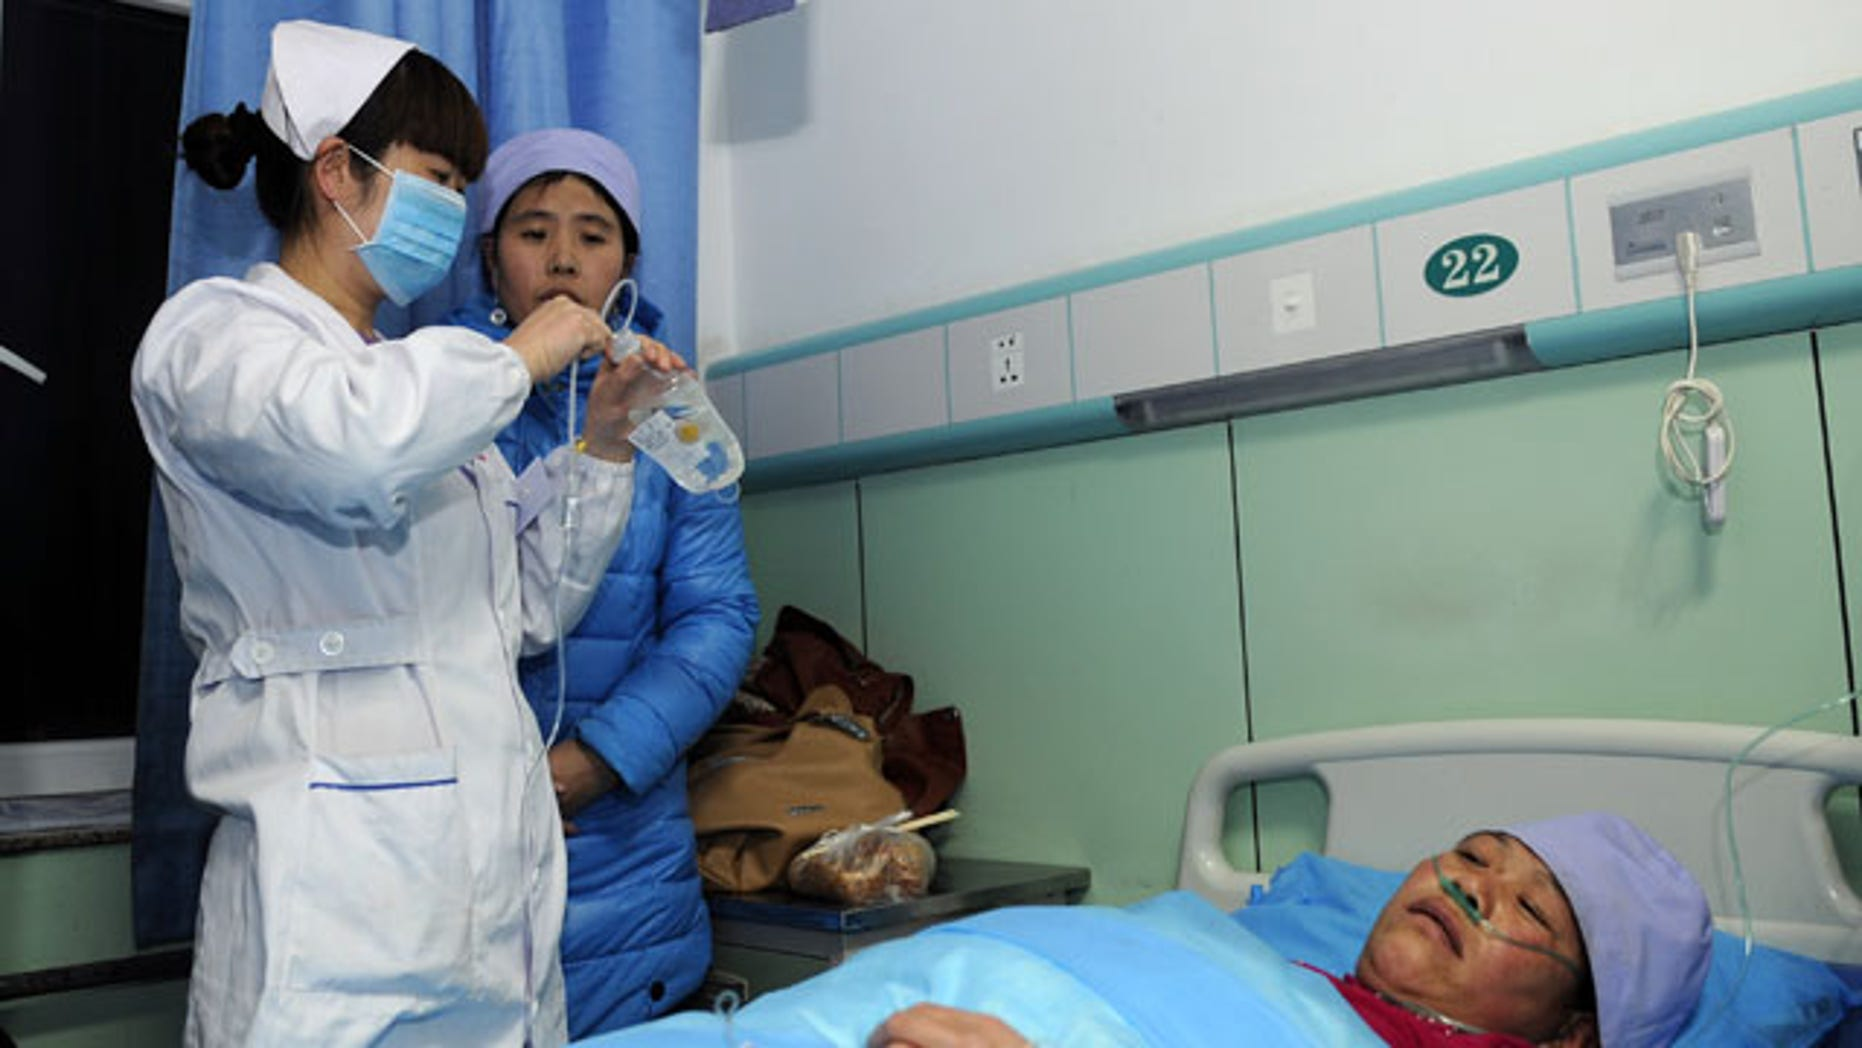 January 5, 2014: An injured woman receives medical treatment at a hospital in Xiji Town of Guyuan, northwest China's Ningxia region. China's Xinhua News Agency said Monday that 14 people were killed in a stampede at a mosque in the country's north and 10 other people were injured in the incident in Guyuan. (AP Photo/Xinhua, Li Ran)